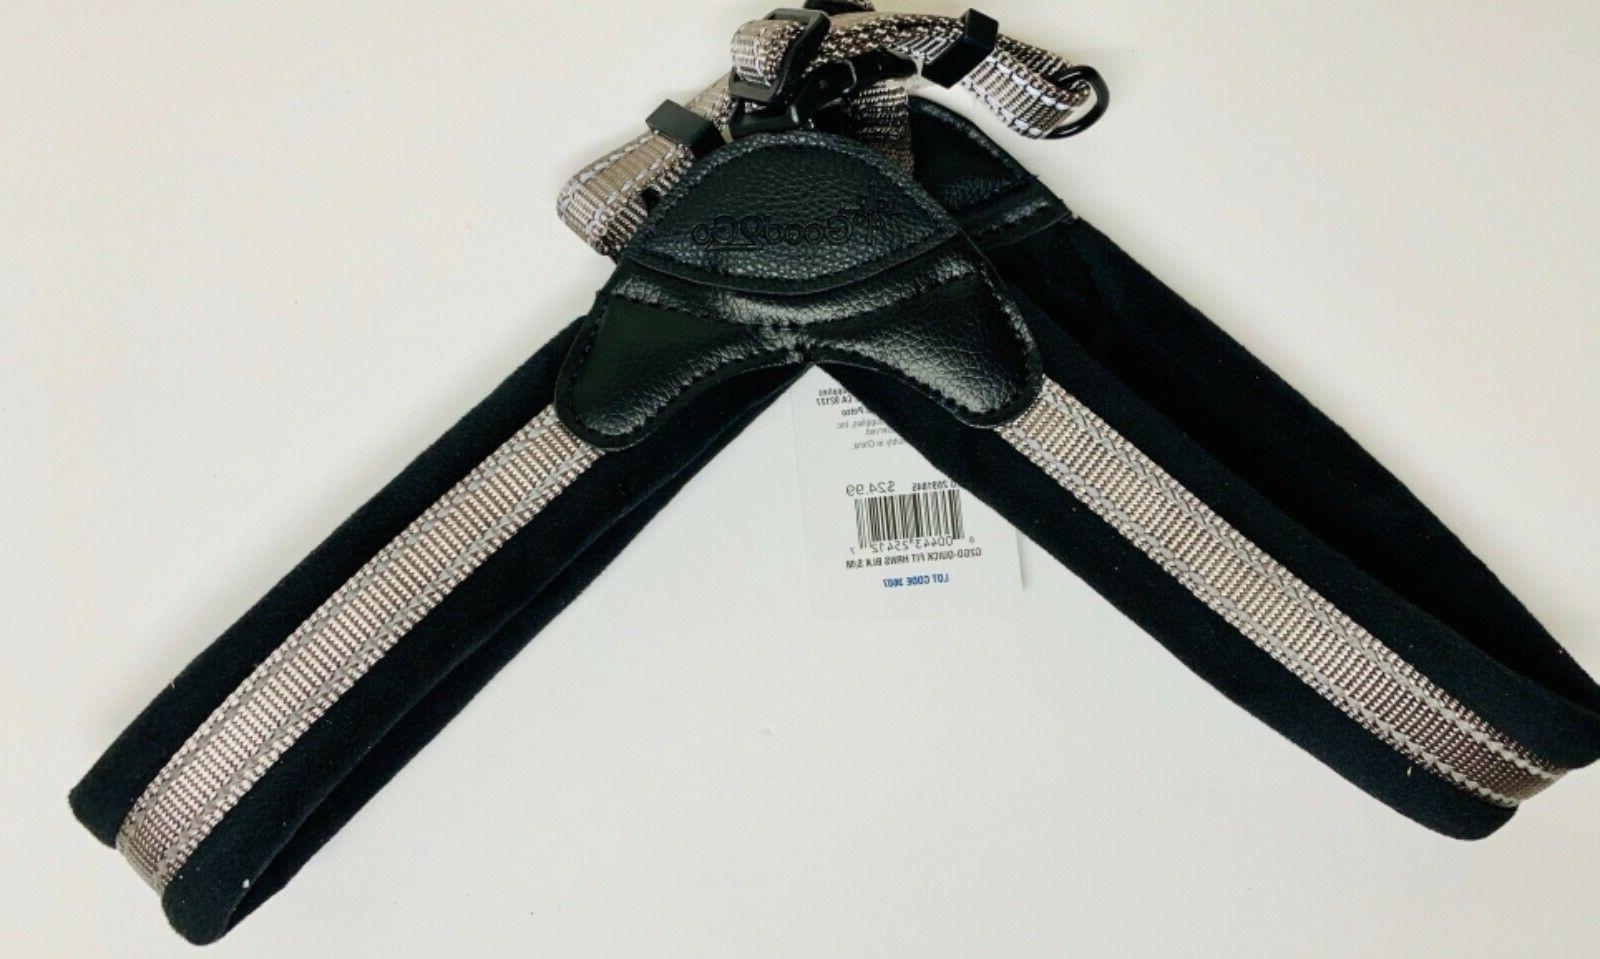 GOOD2GO Quick-Fit Dog Harness Lightweight and Adjustable Easy